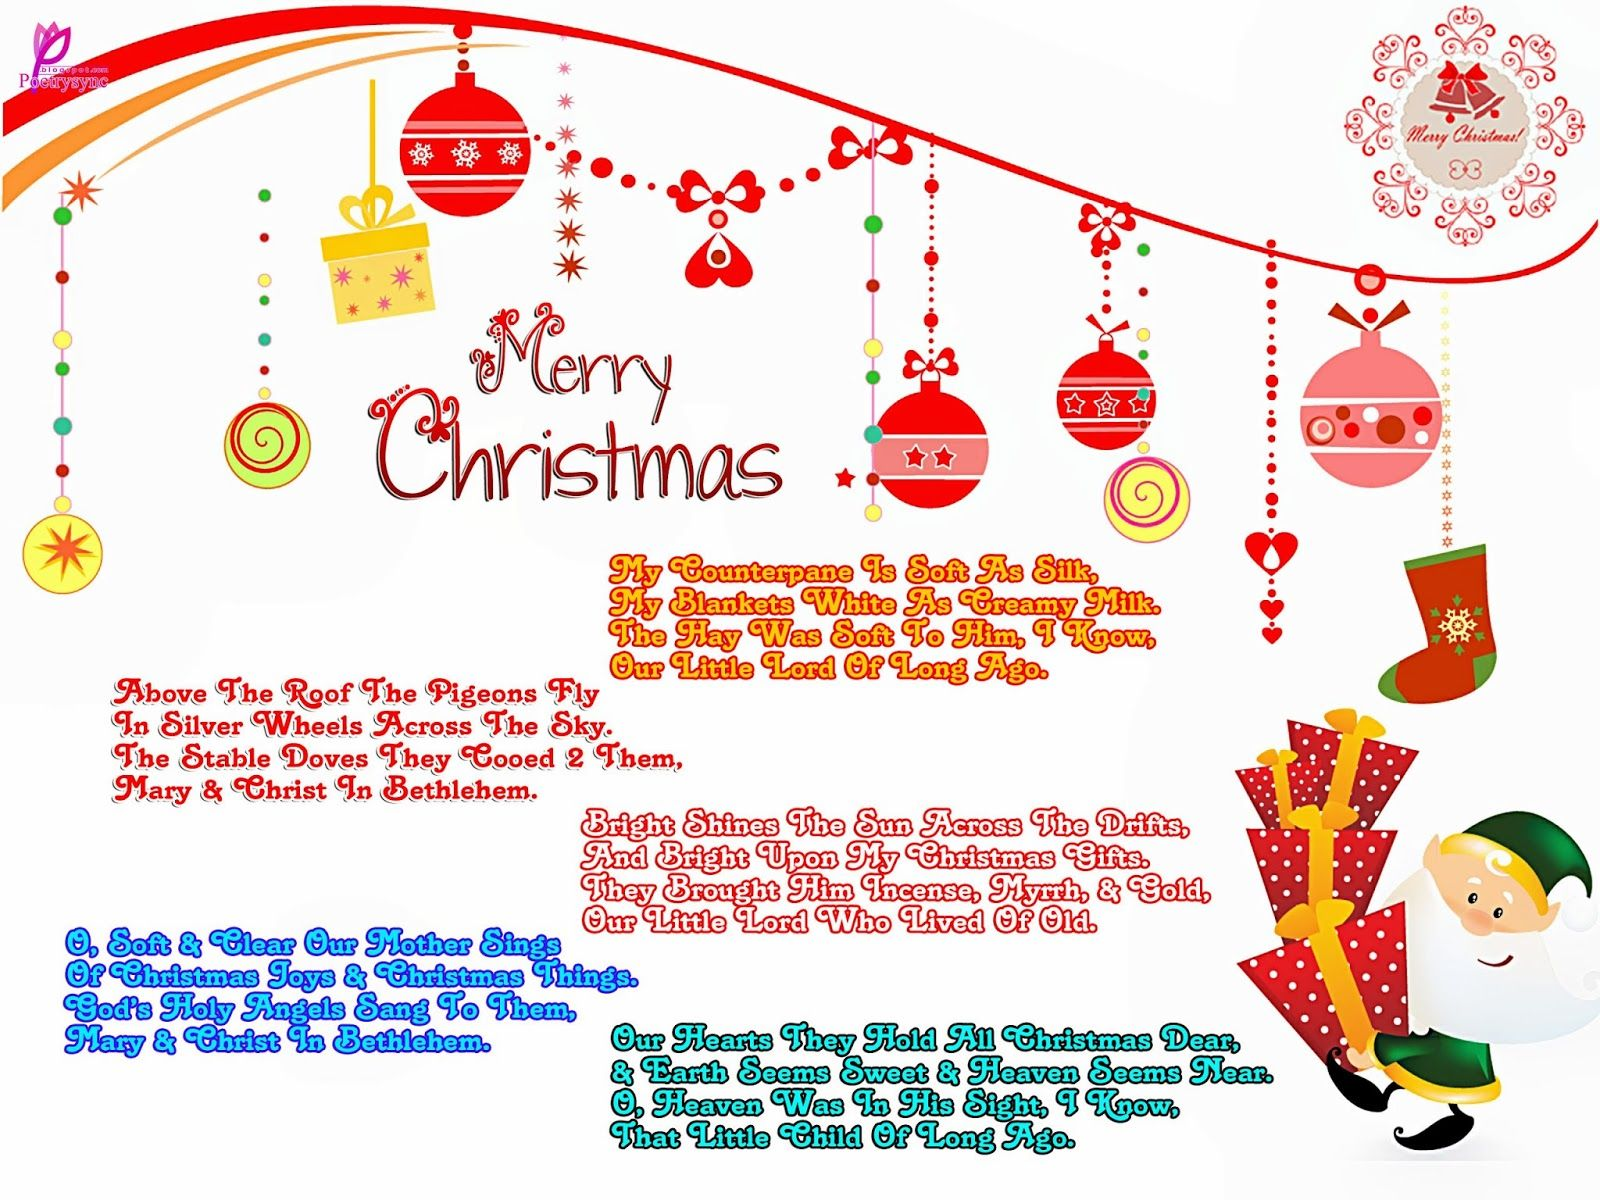 Christmas videos merry christmas wishes pinterest christmas christmas videos kristyandbryce Image collections